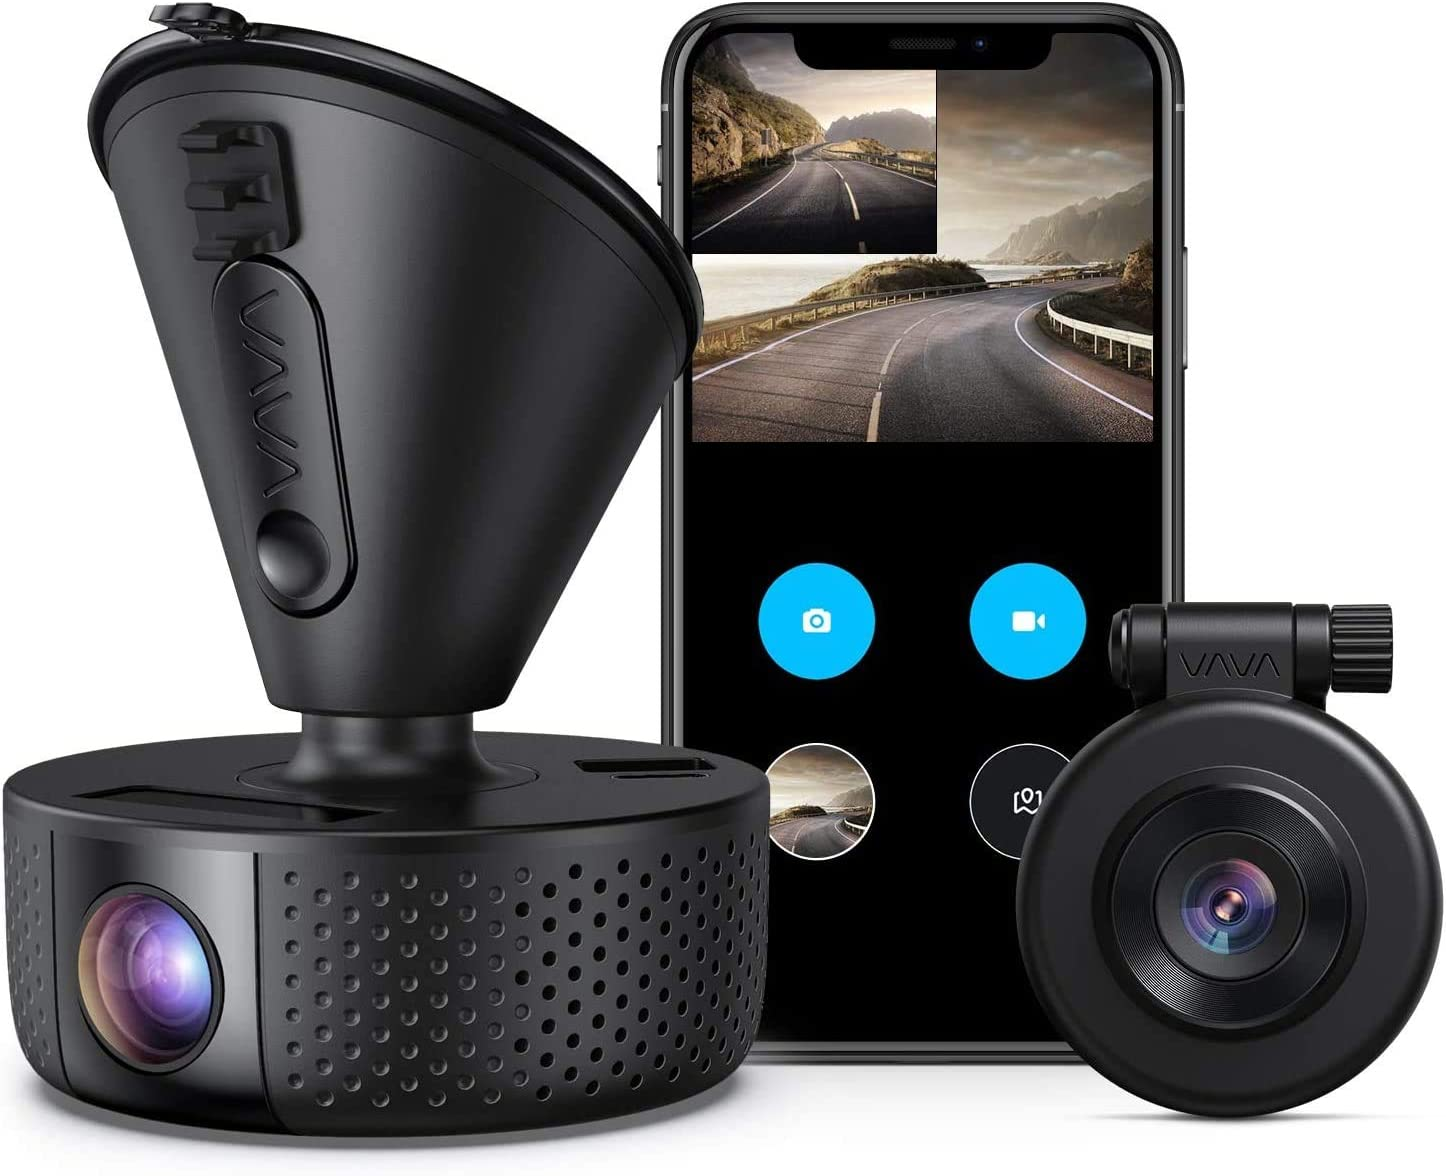 Dual Dash cam   VAVA Dual 1920x1080P FHD   Front and Rear dash camera   2560x1440P Single Front  for cars with Wi-Fi   Night Vision   Parking Mode   G-sensor   WDR   Loop recording  Support 128GB Max